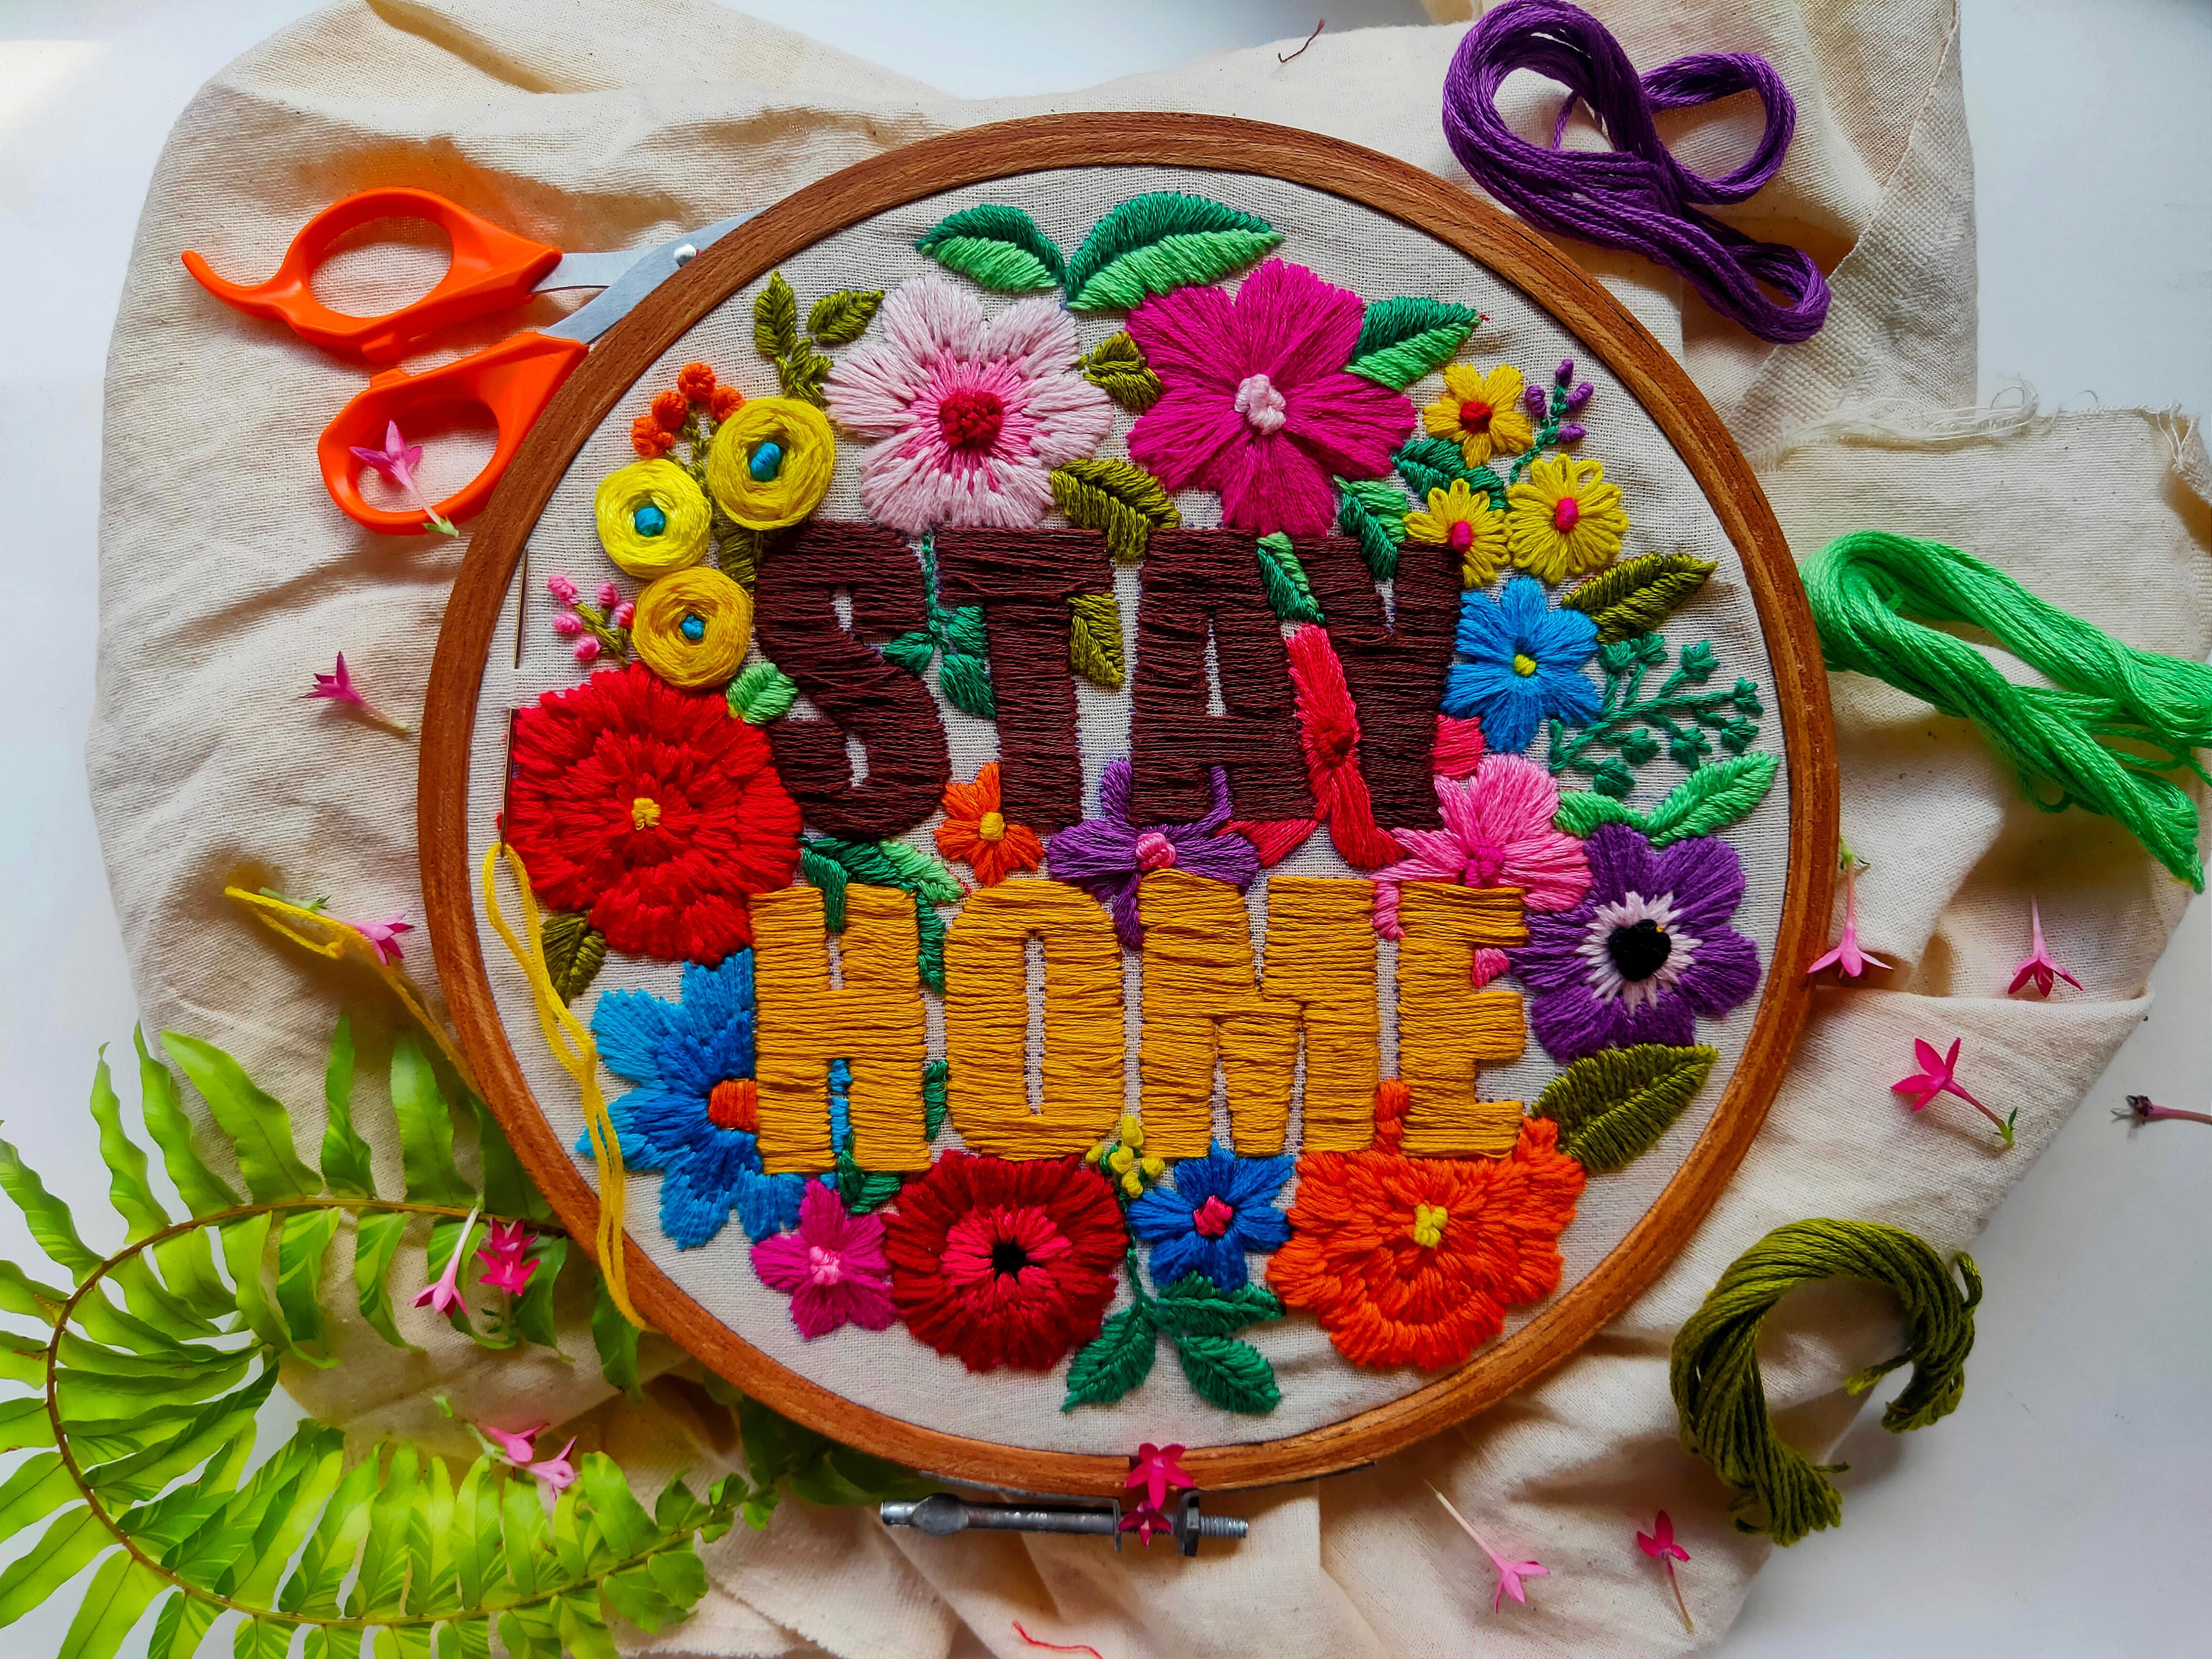 Stay Home embroidery - Swati H Das on Unsplash